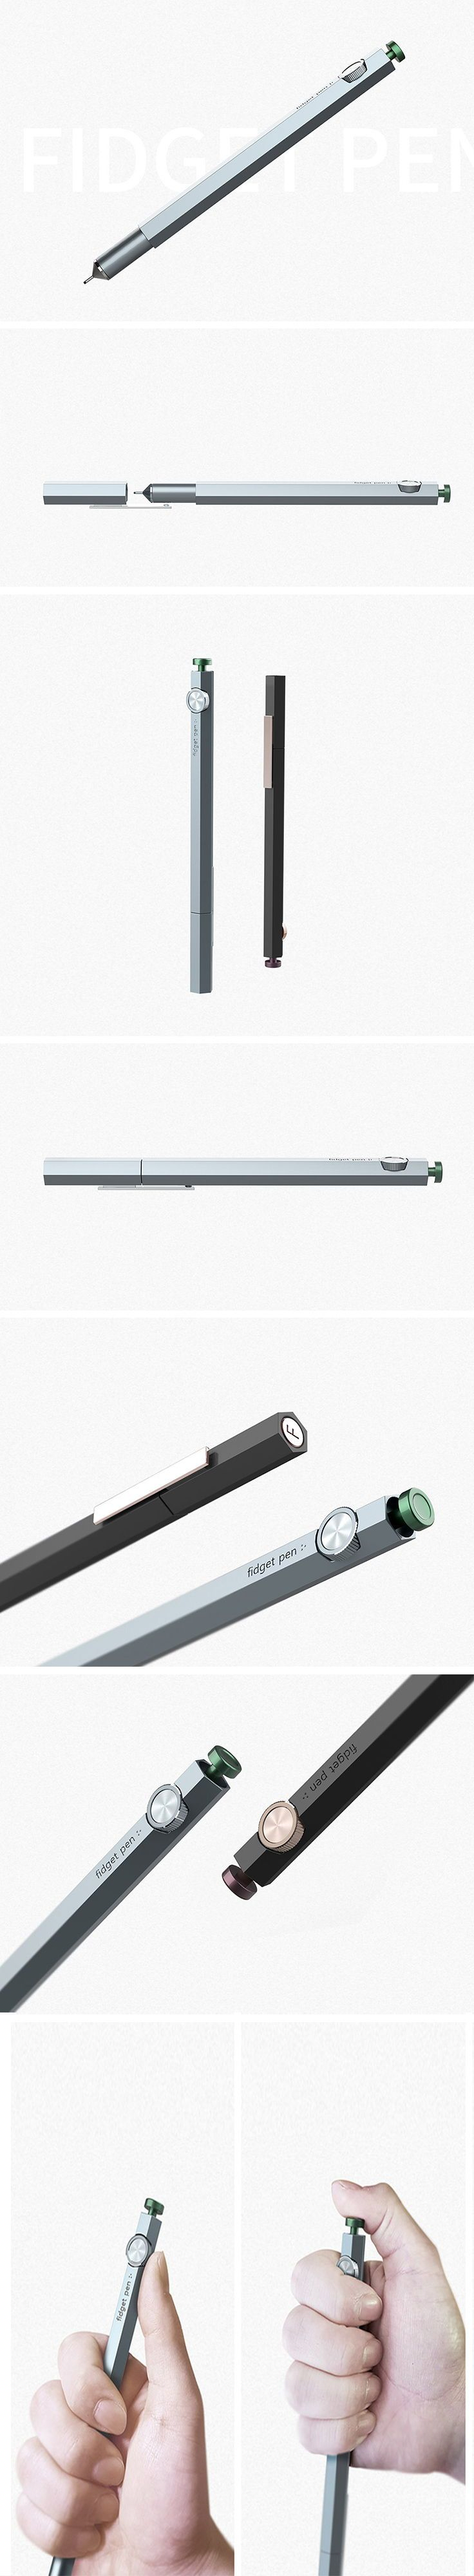 The Fidget pen is here. Integrated into the end of the pen, a finger fidget mechanism allows users to turn the wheels, press buttons and feel the intaglio to their subconscious heart's content! Because it doubles as a writing utensil, it will have twice the chance of staying with the user.